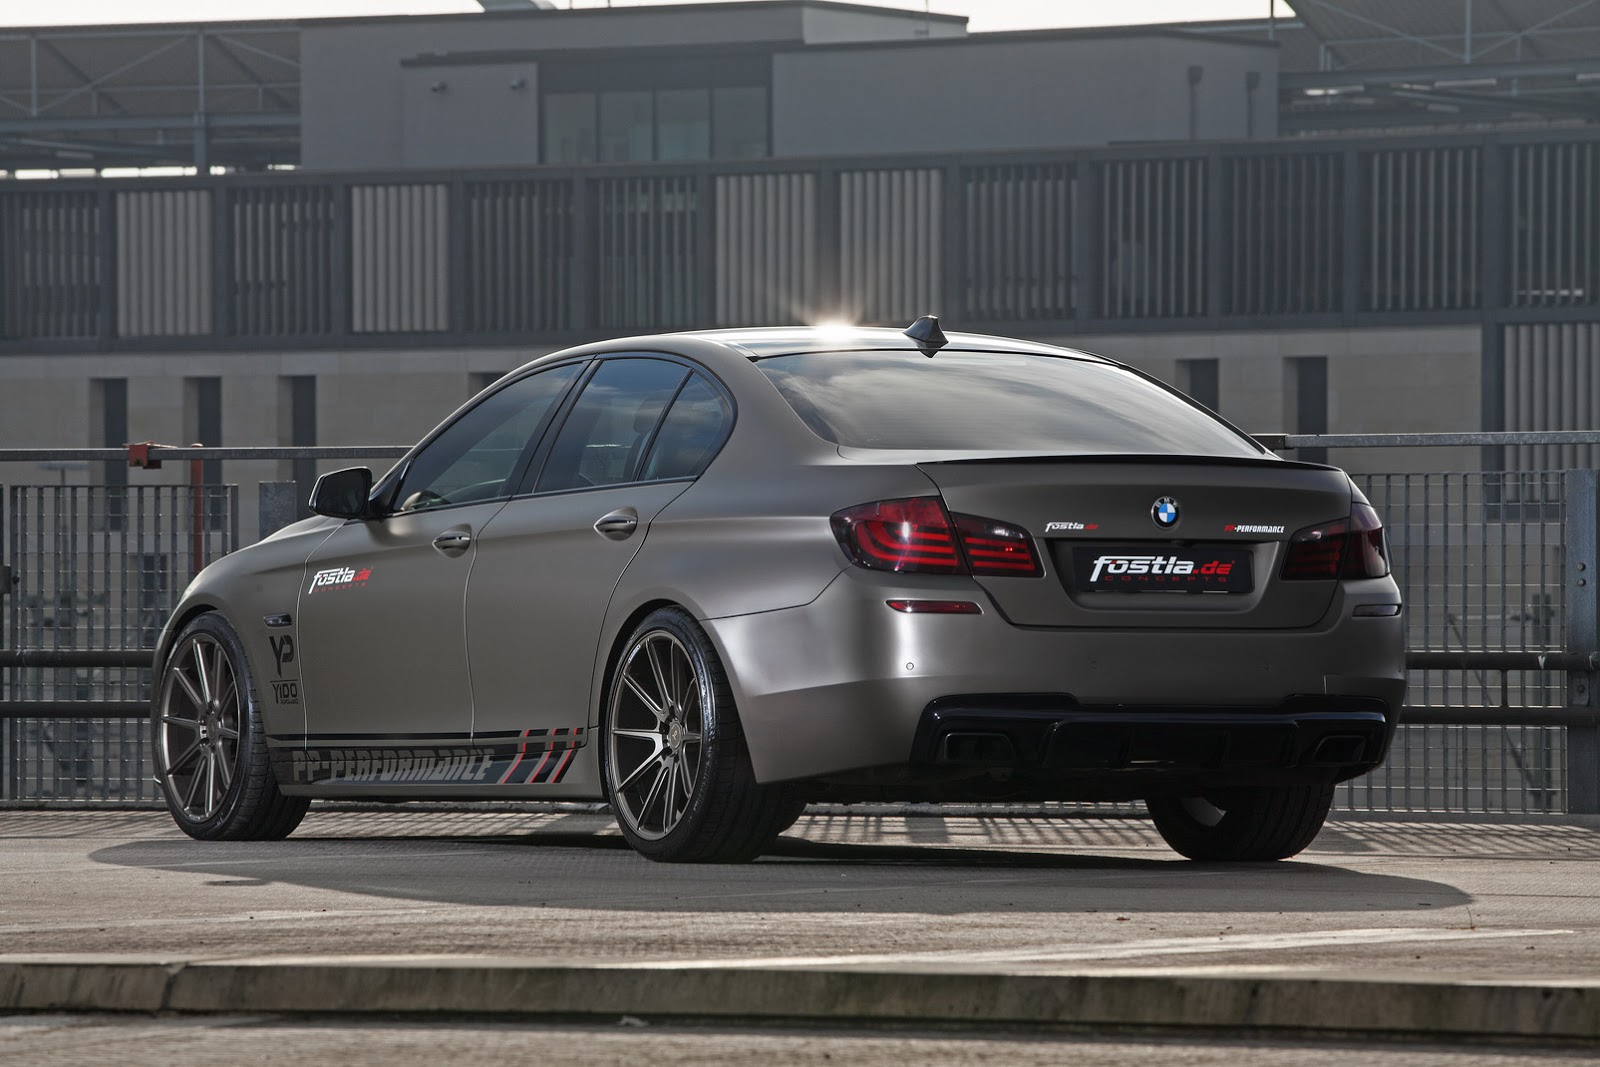 Fostla Bmw 550i Has 570 Hp And 800 Nm Autoevolution